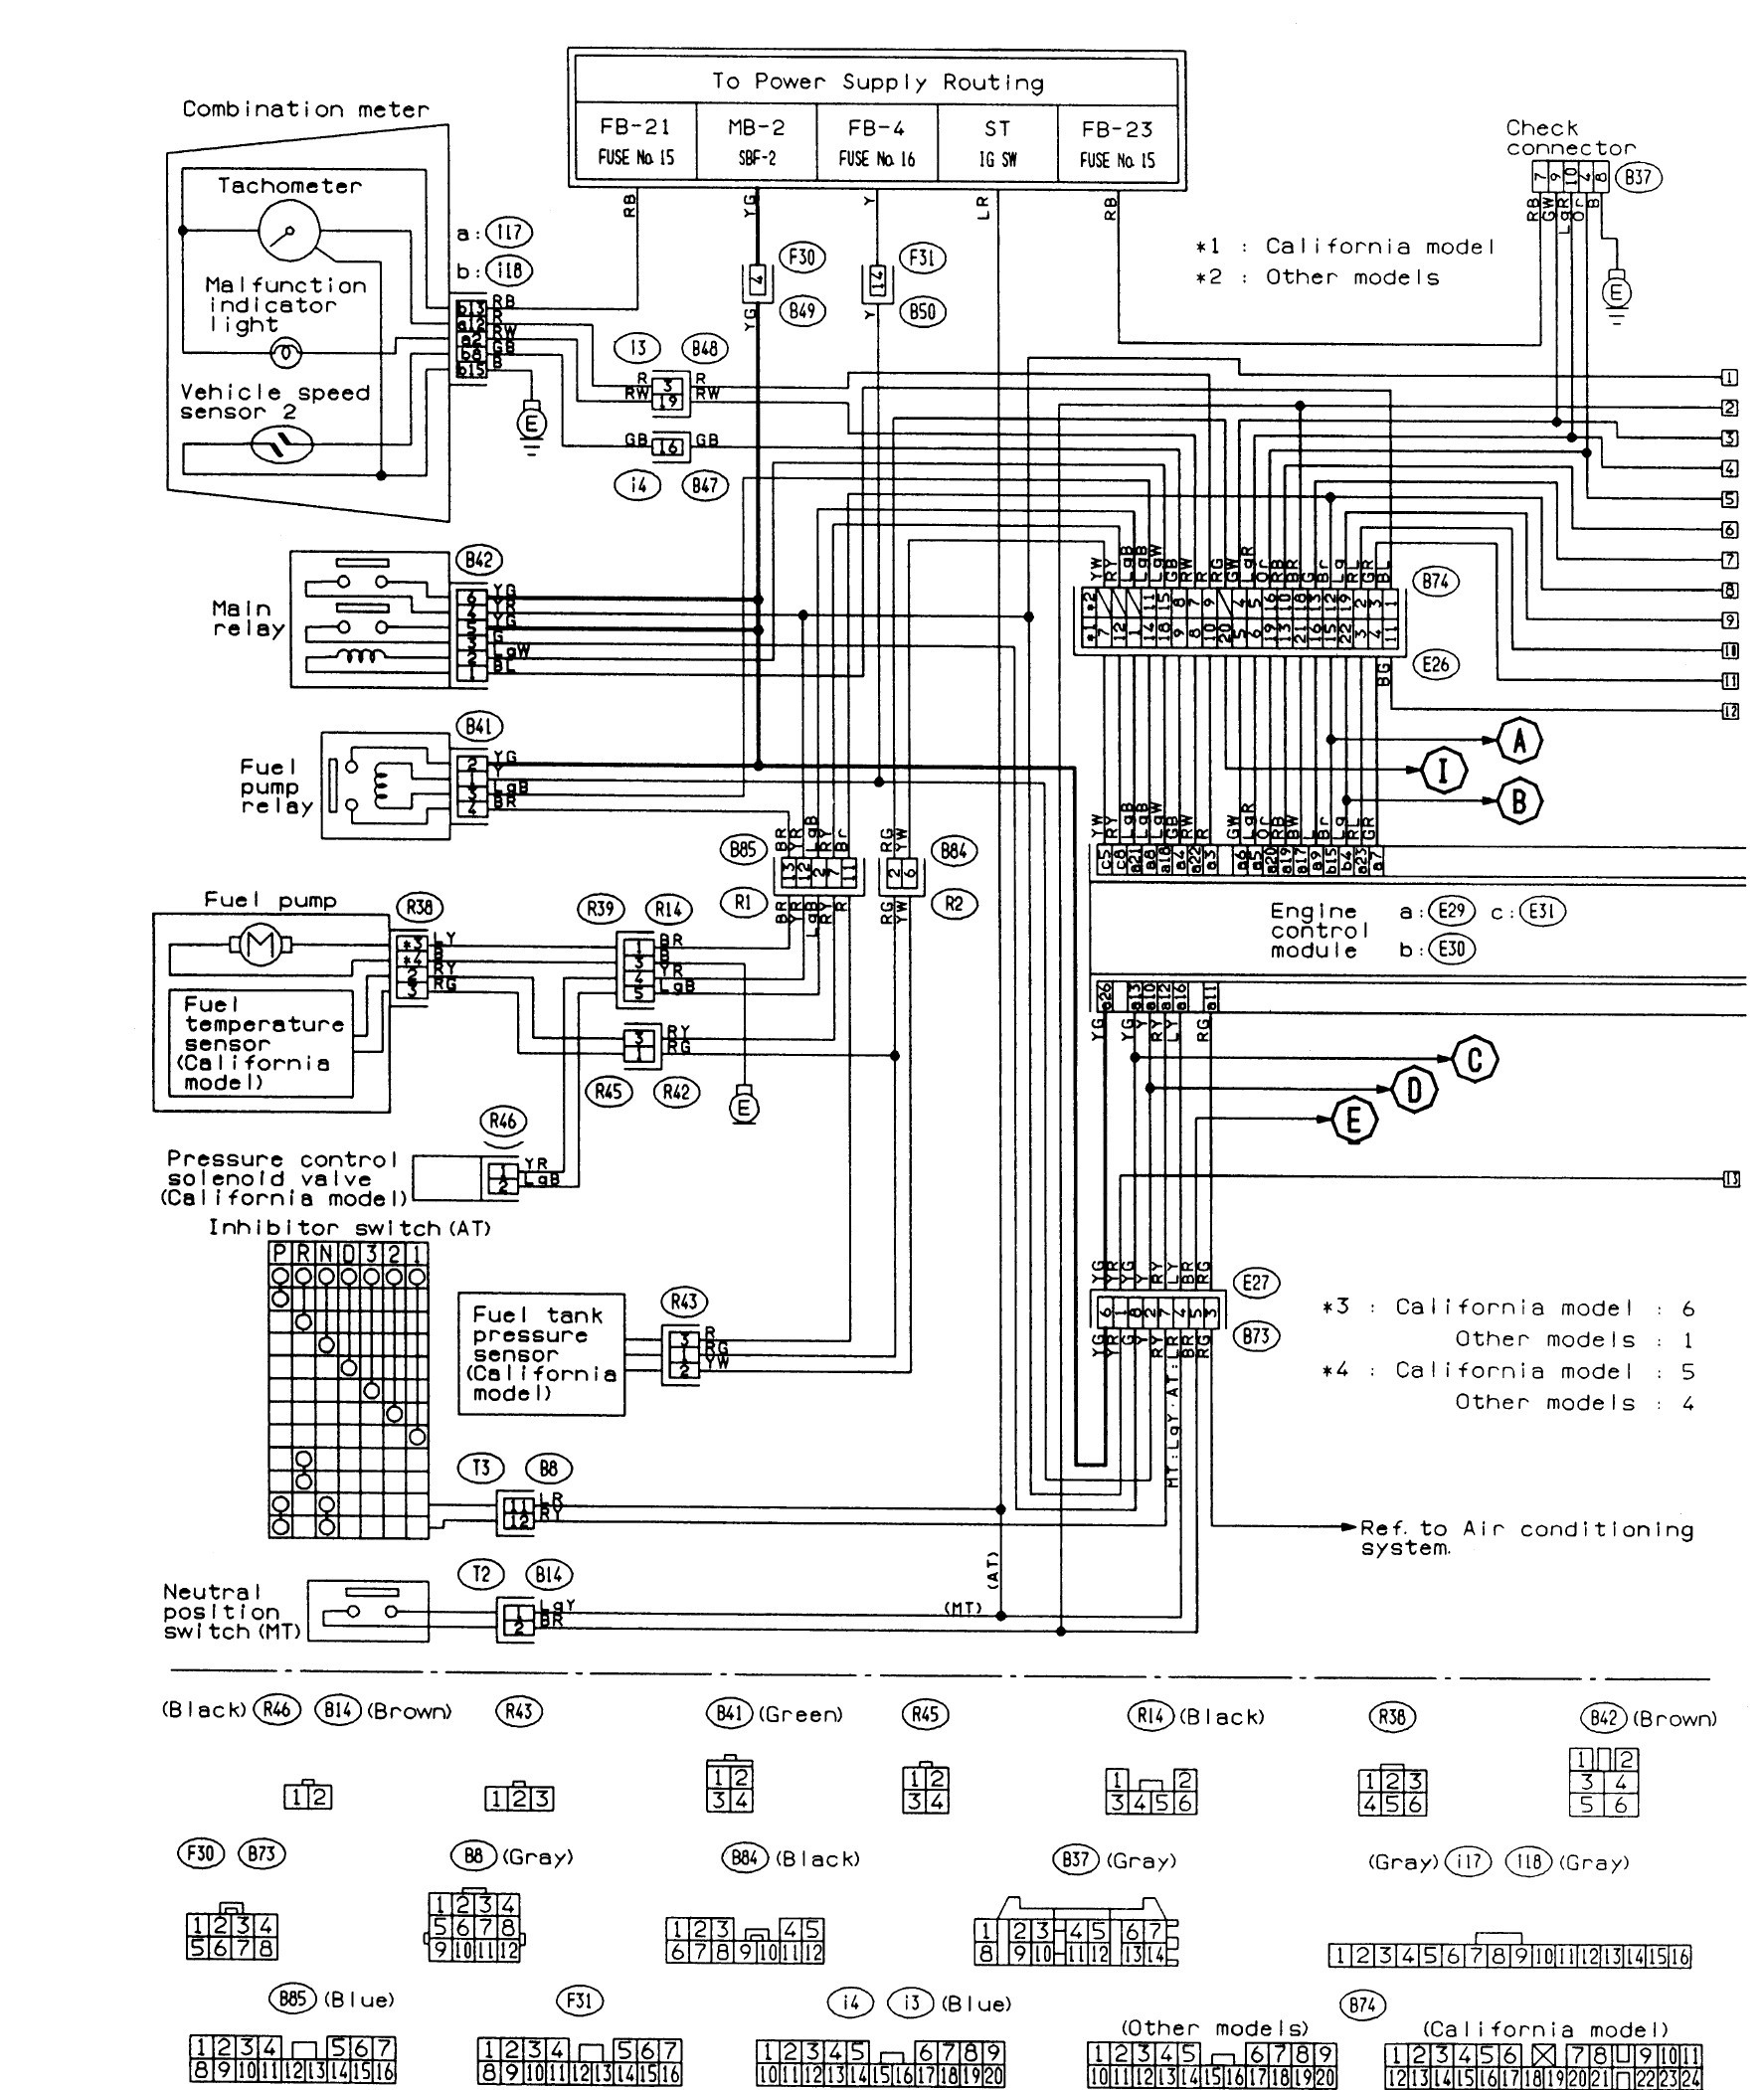 2015 Wrx Engine Diagram Cool Review About 2002 Wrx Engine with Breathtaking Of 2015 Wrx Engine Diagram